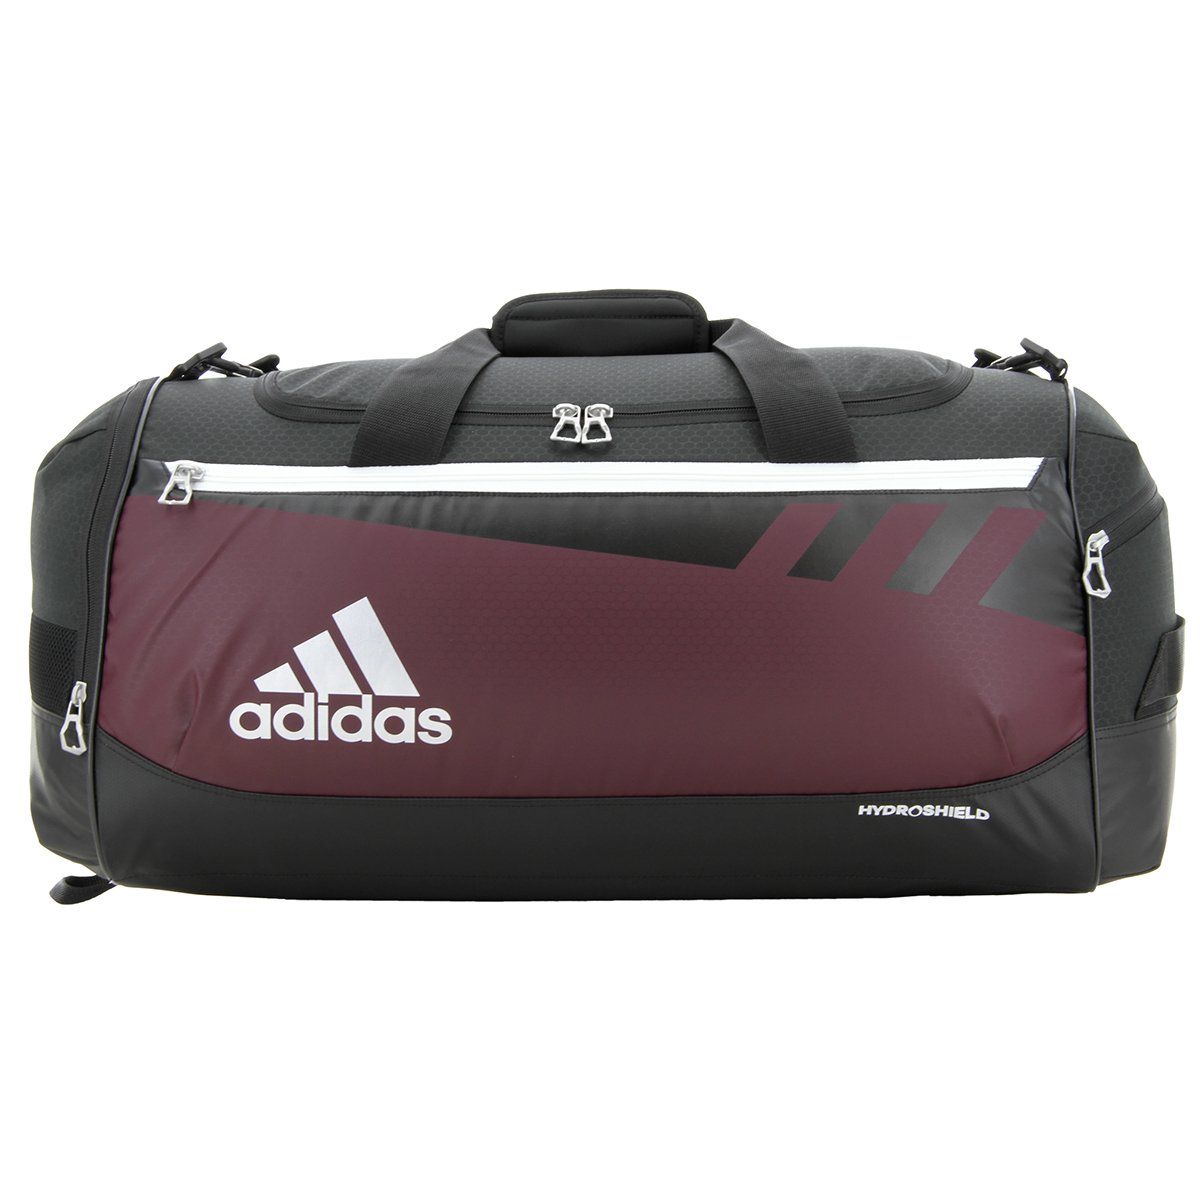 7b80f4b78e ... adidas Team Issue Duffel Bag Amazon.ca Sports Outdoors wholesale dealer  a86bc 49650 ...